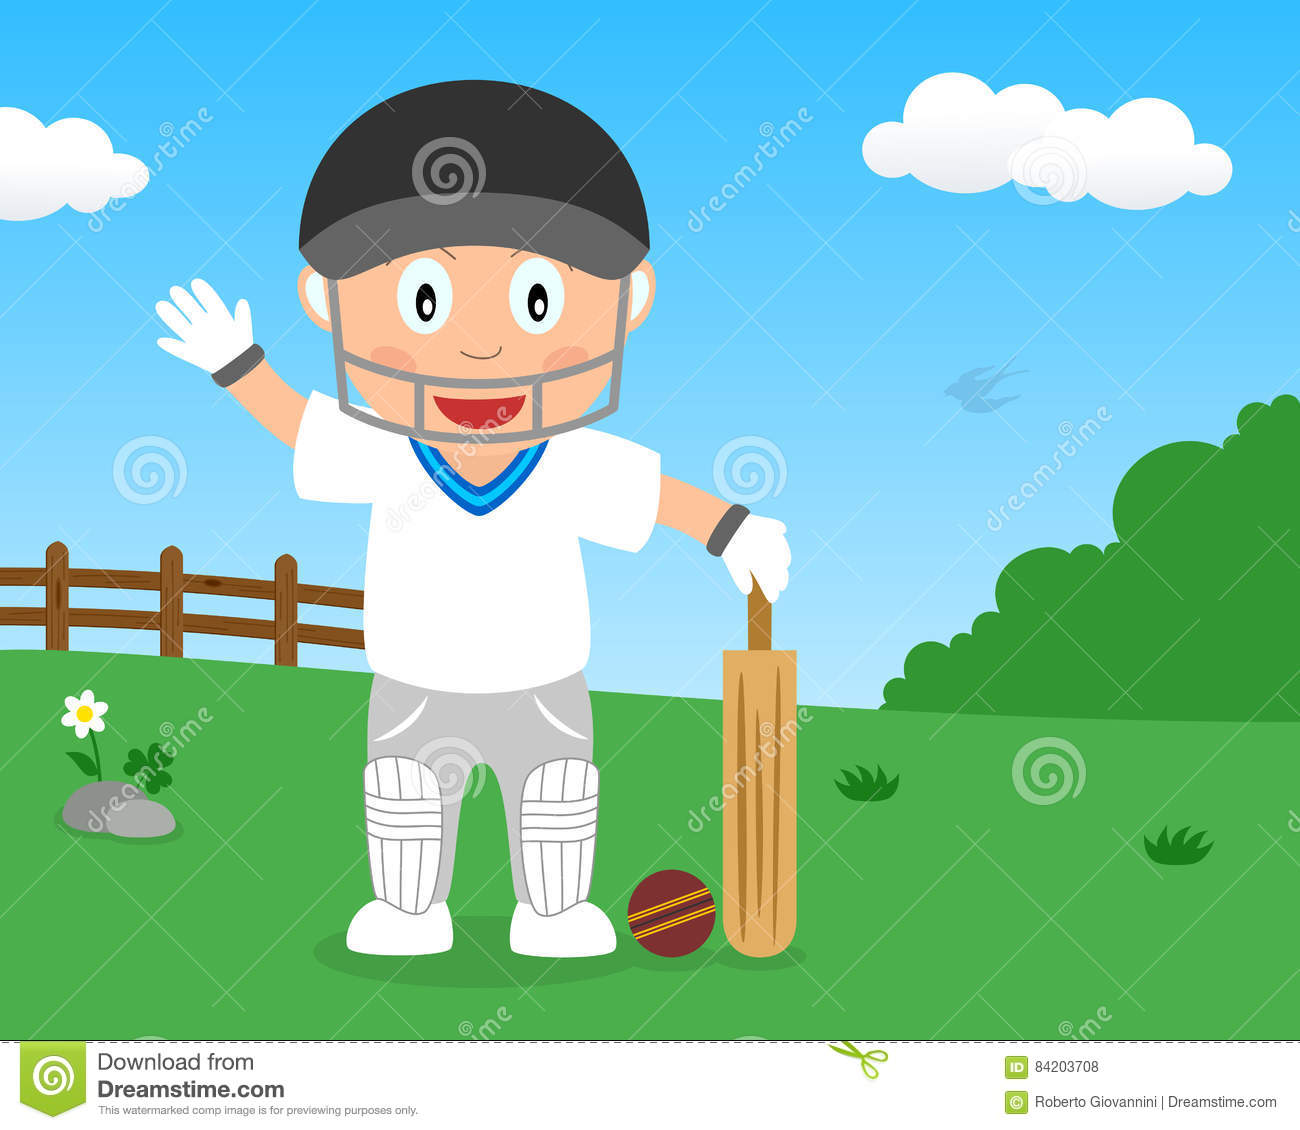 Cricket drawing for kids